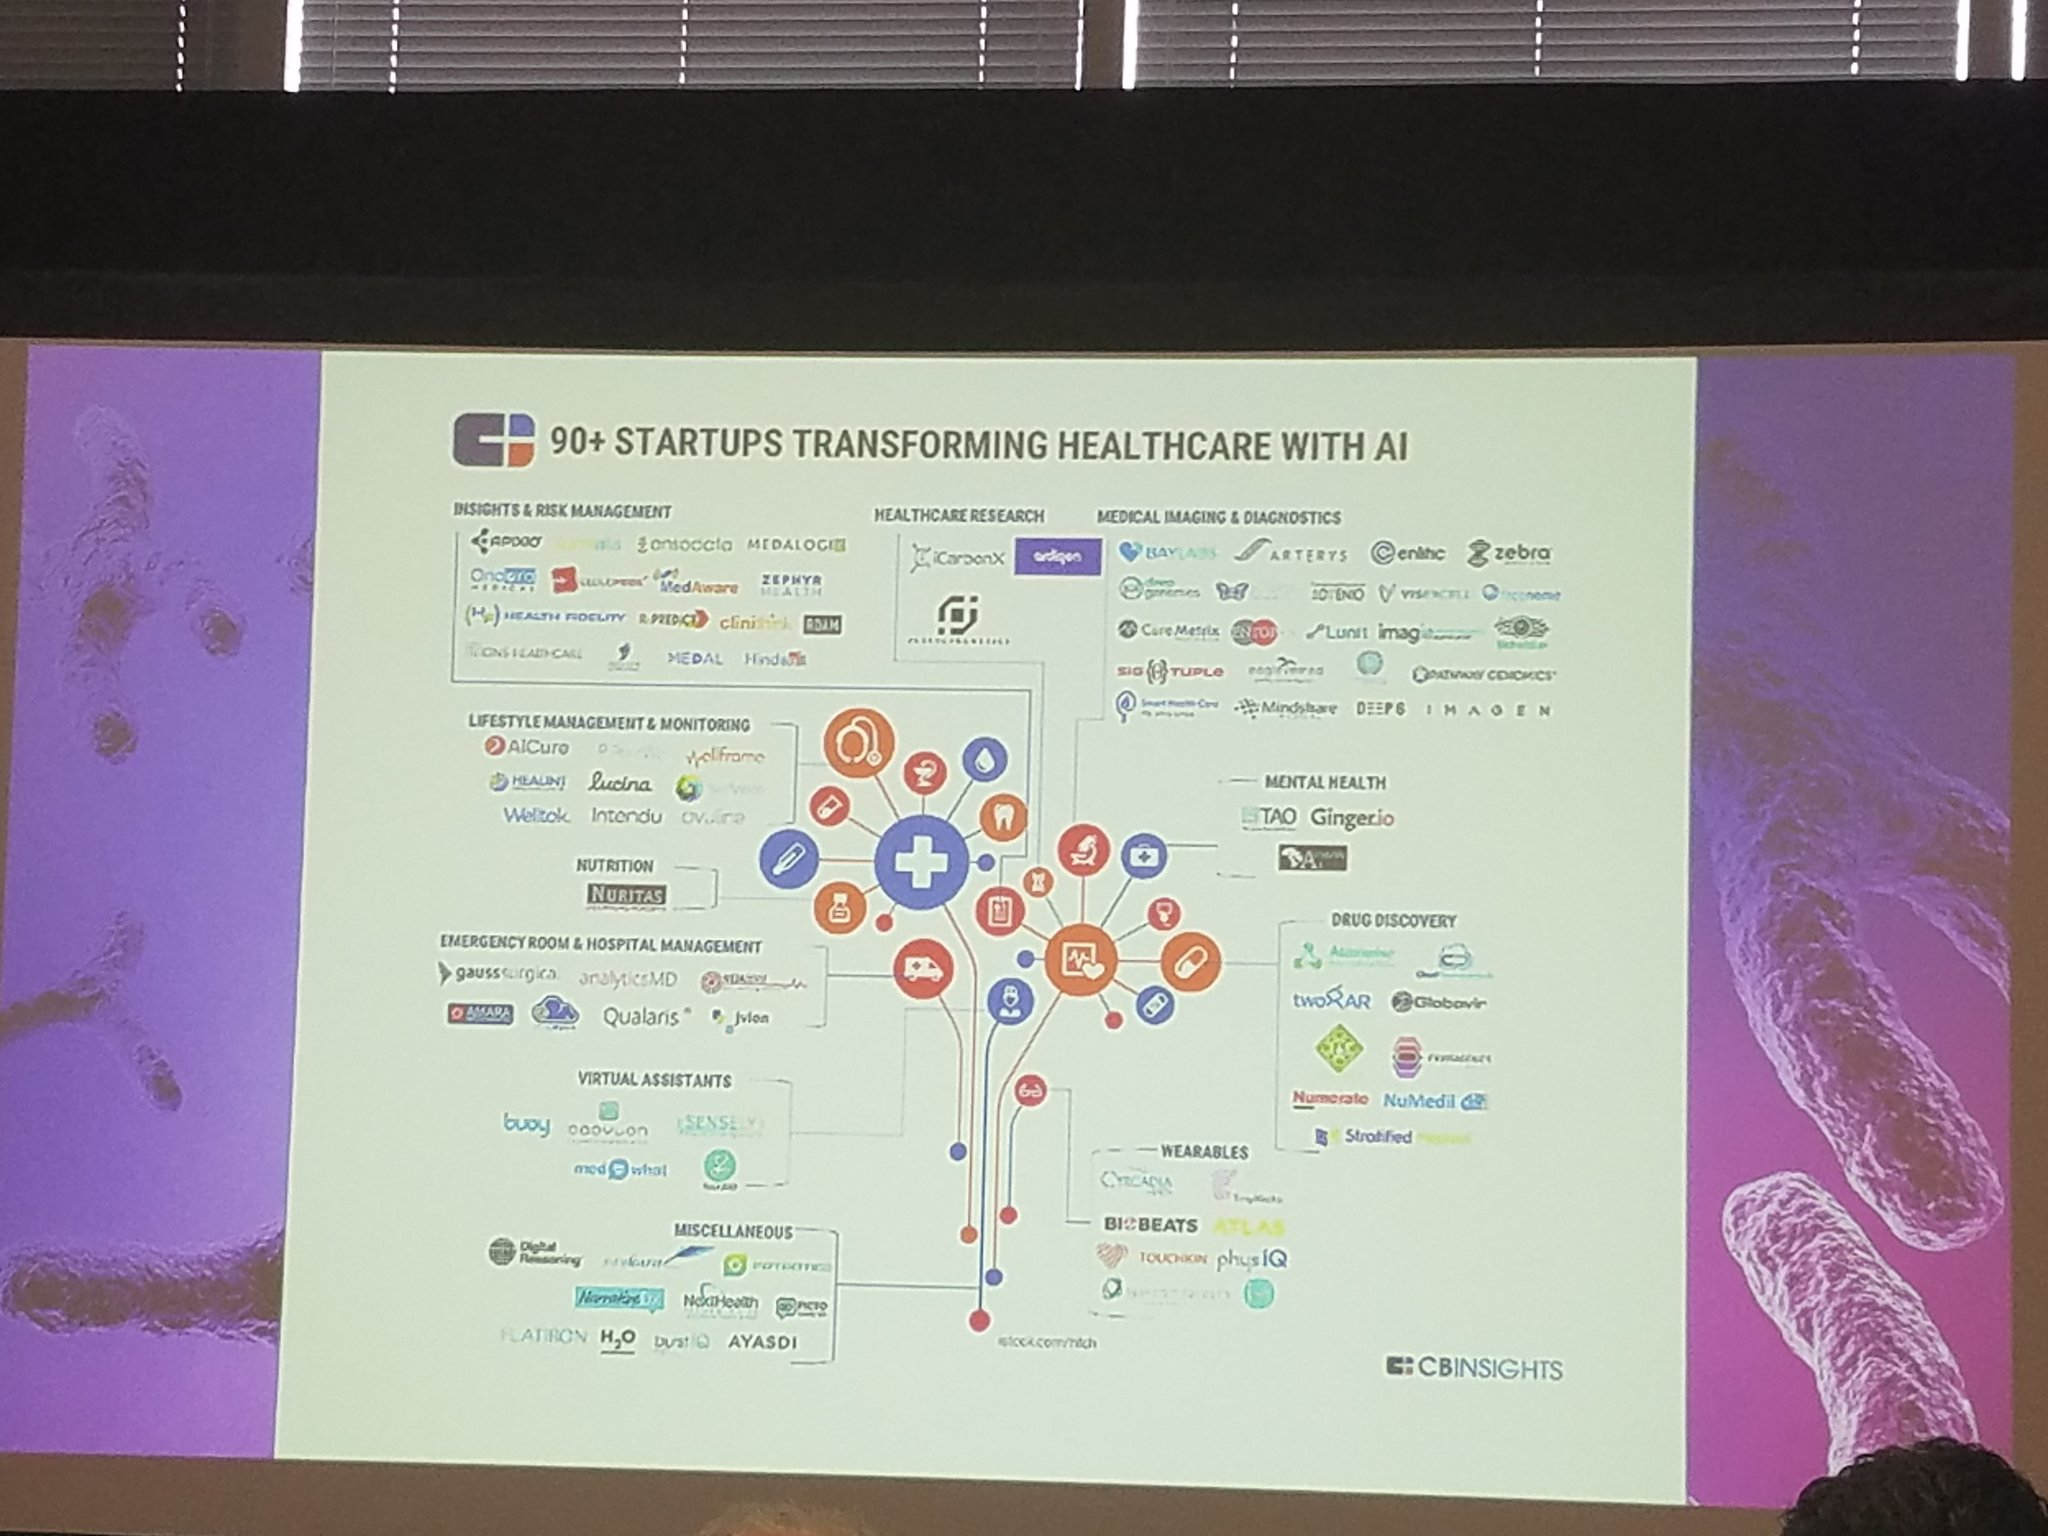 Hot space! Over 90 startups on #AI in #Healthcare reported by @Ardigen_SA #PMWC17 https://t.co/R1AqhNIr0G